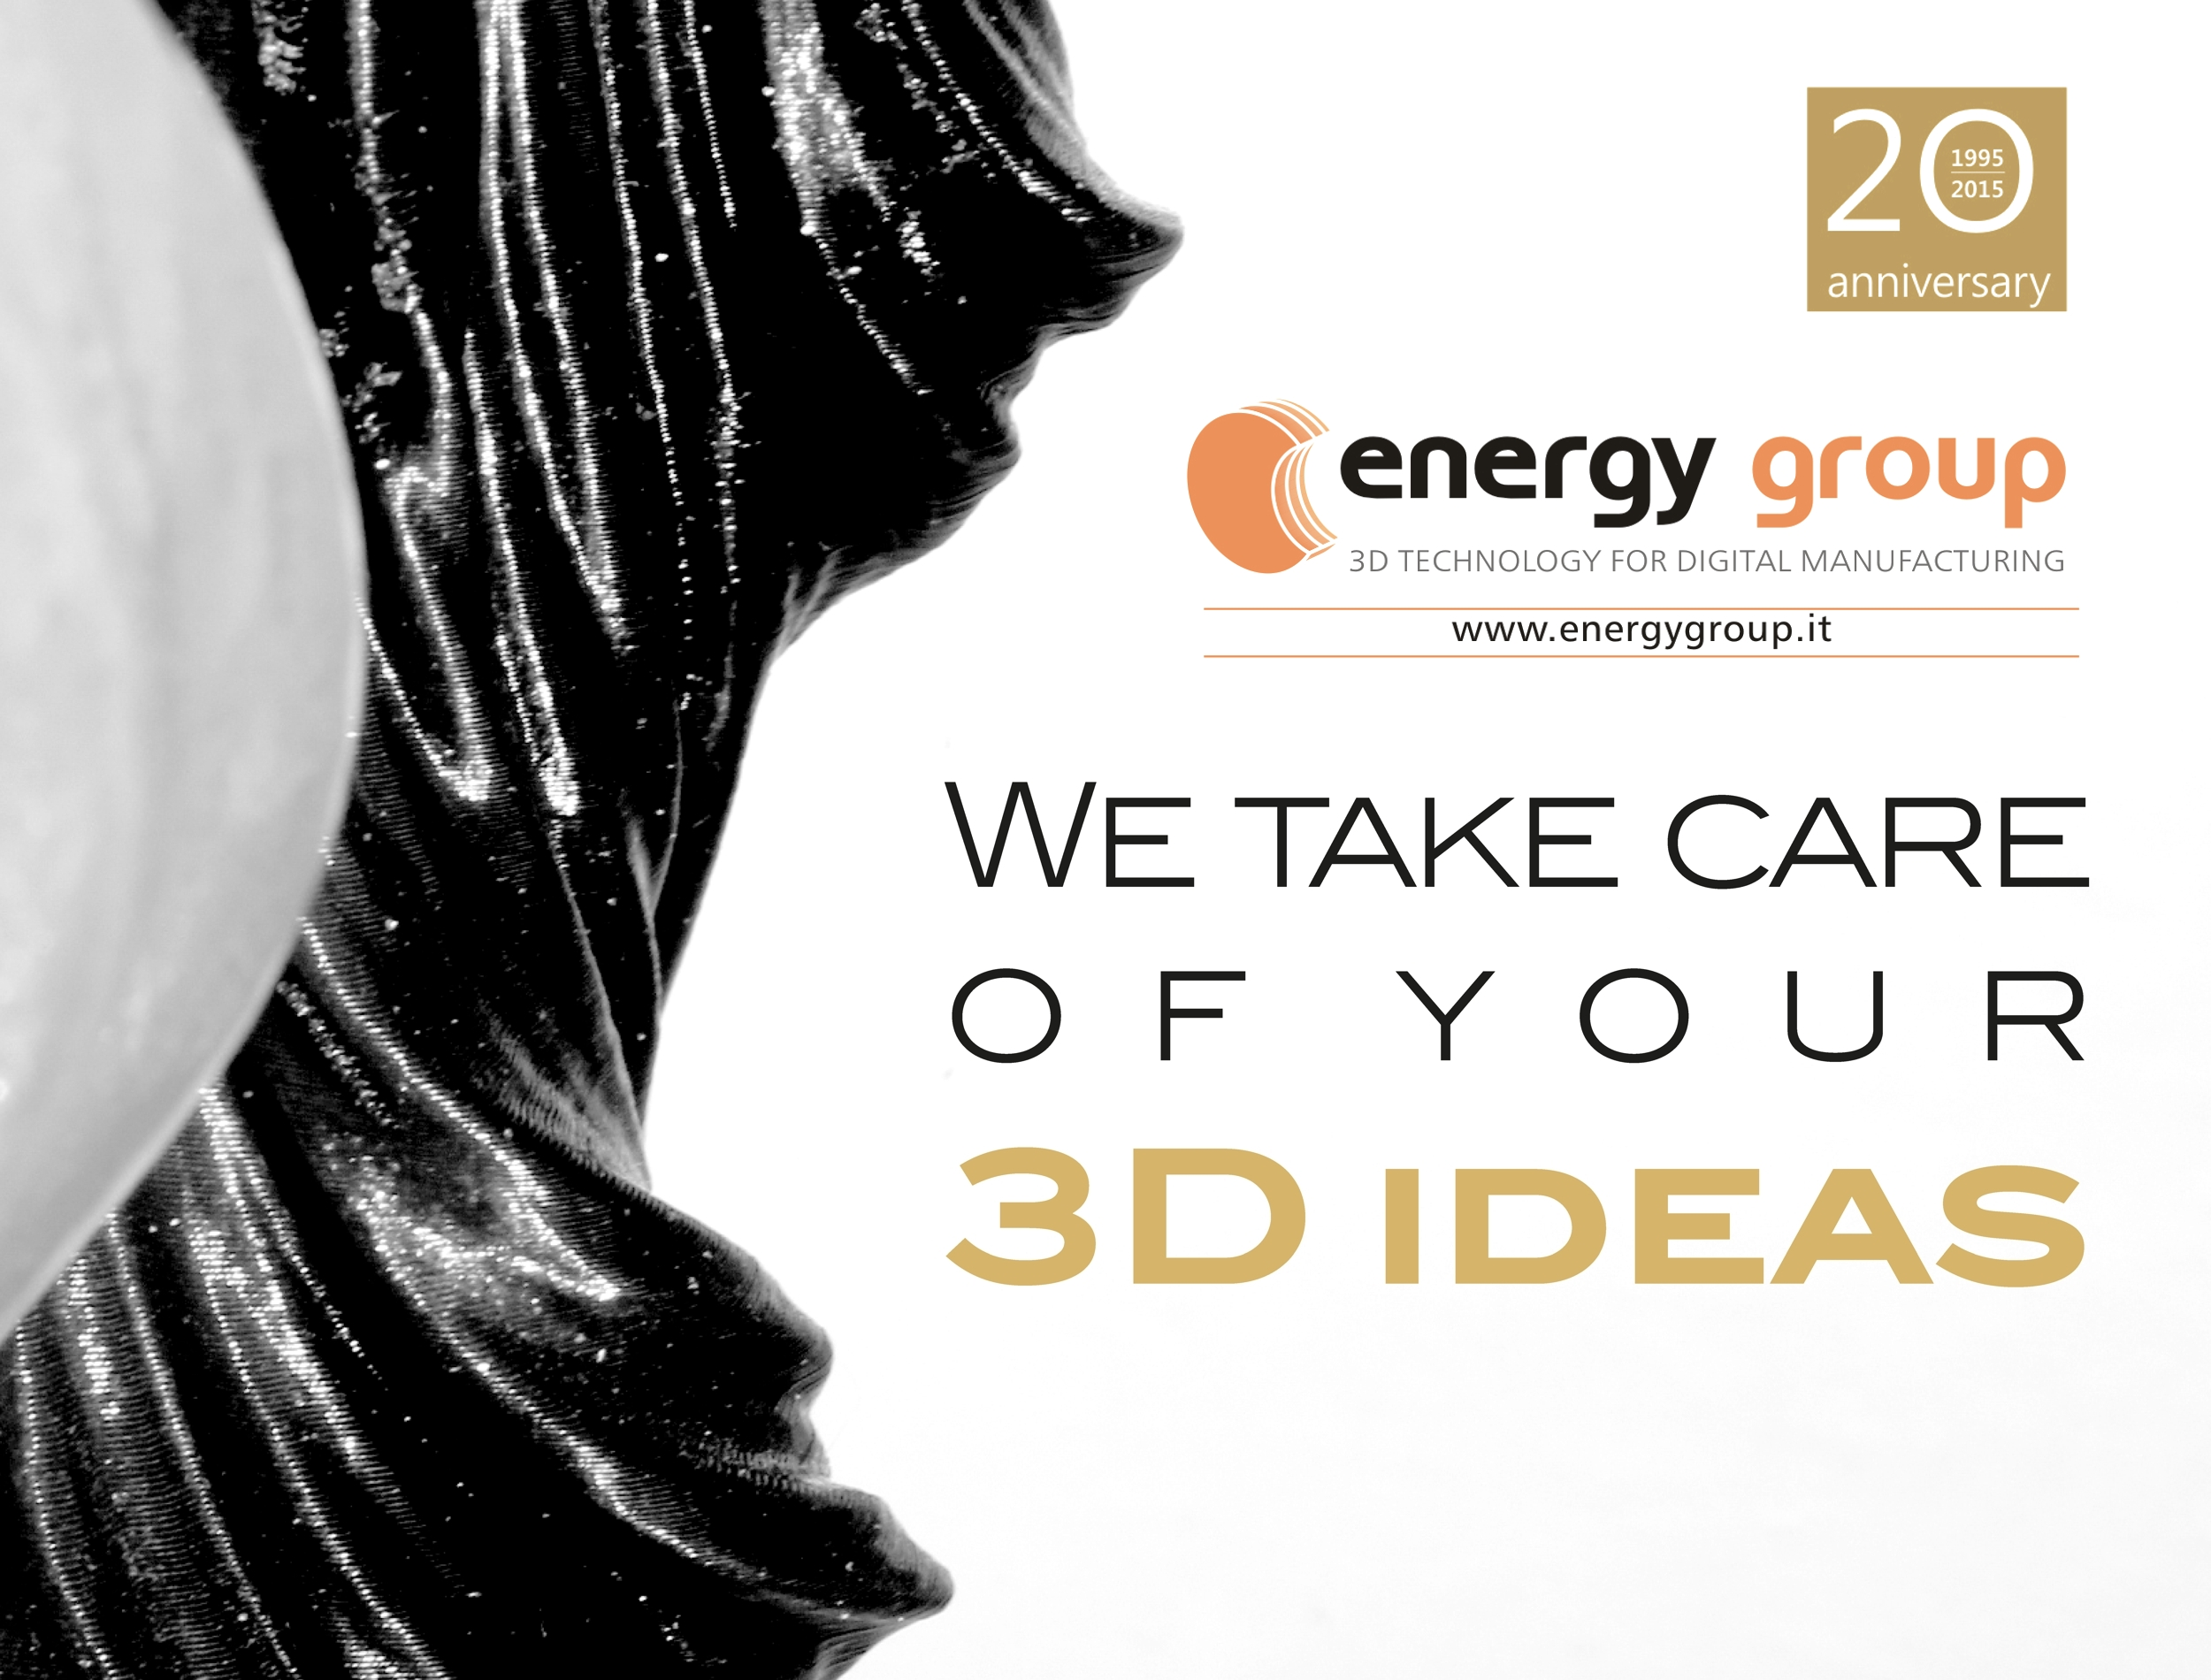 ENERGY GROUP20th_TakesCare3DIdeas